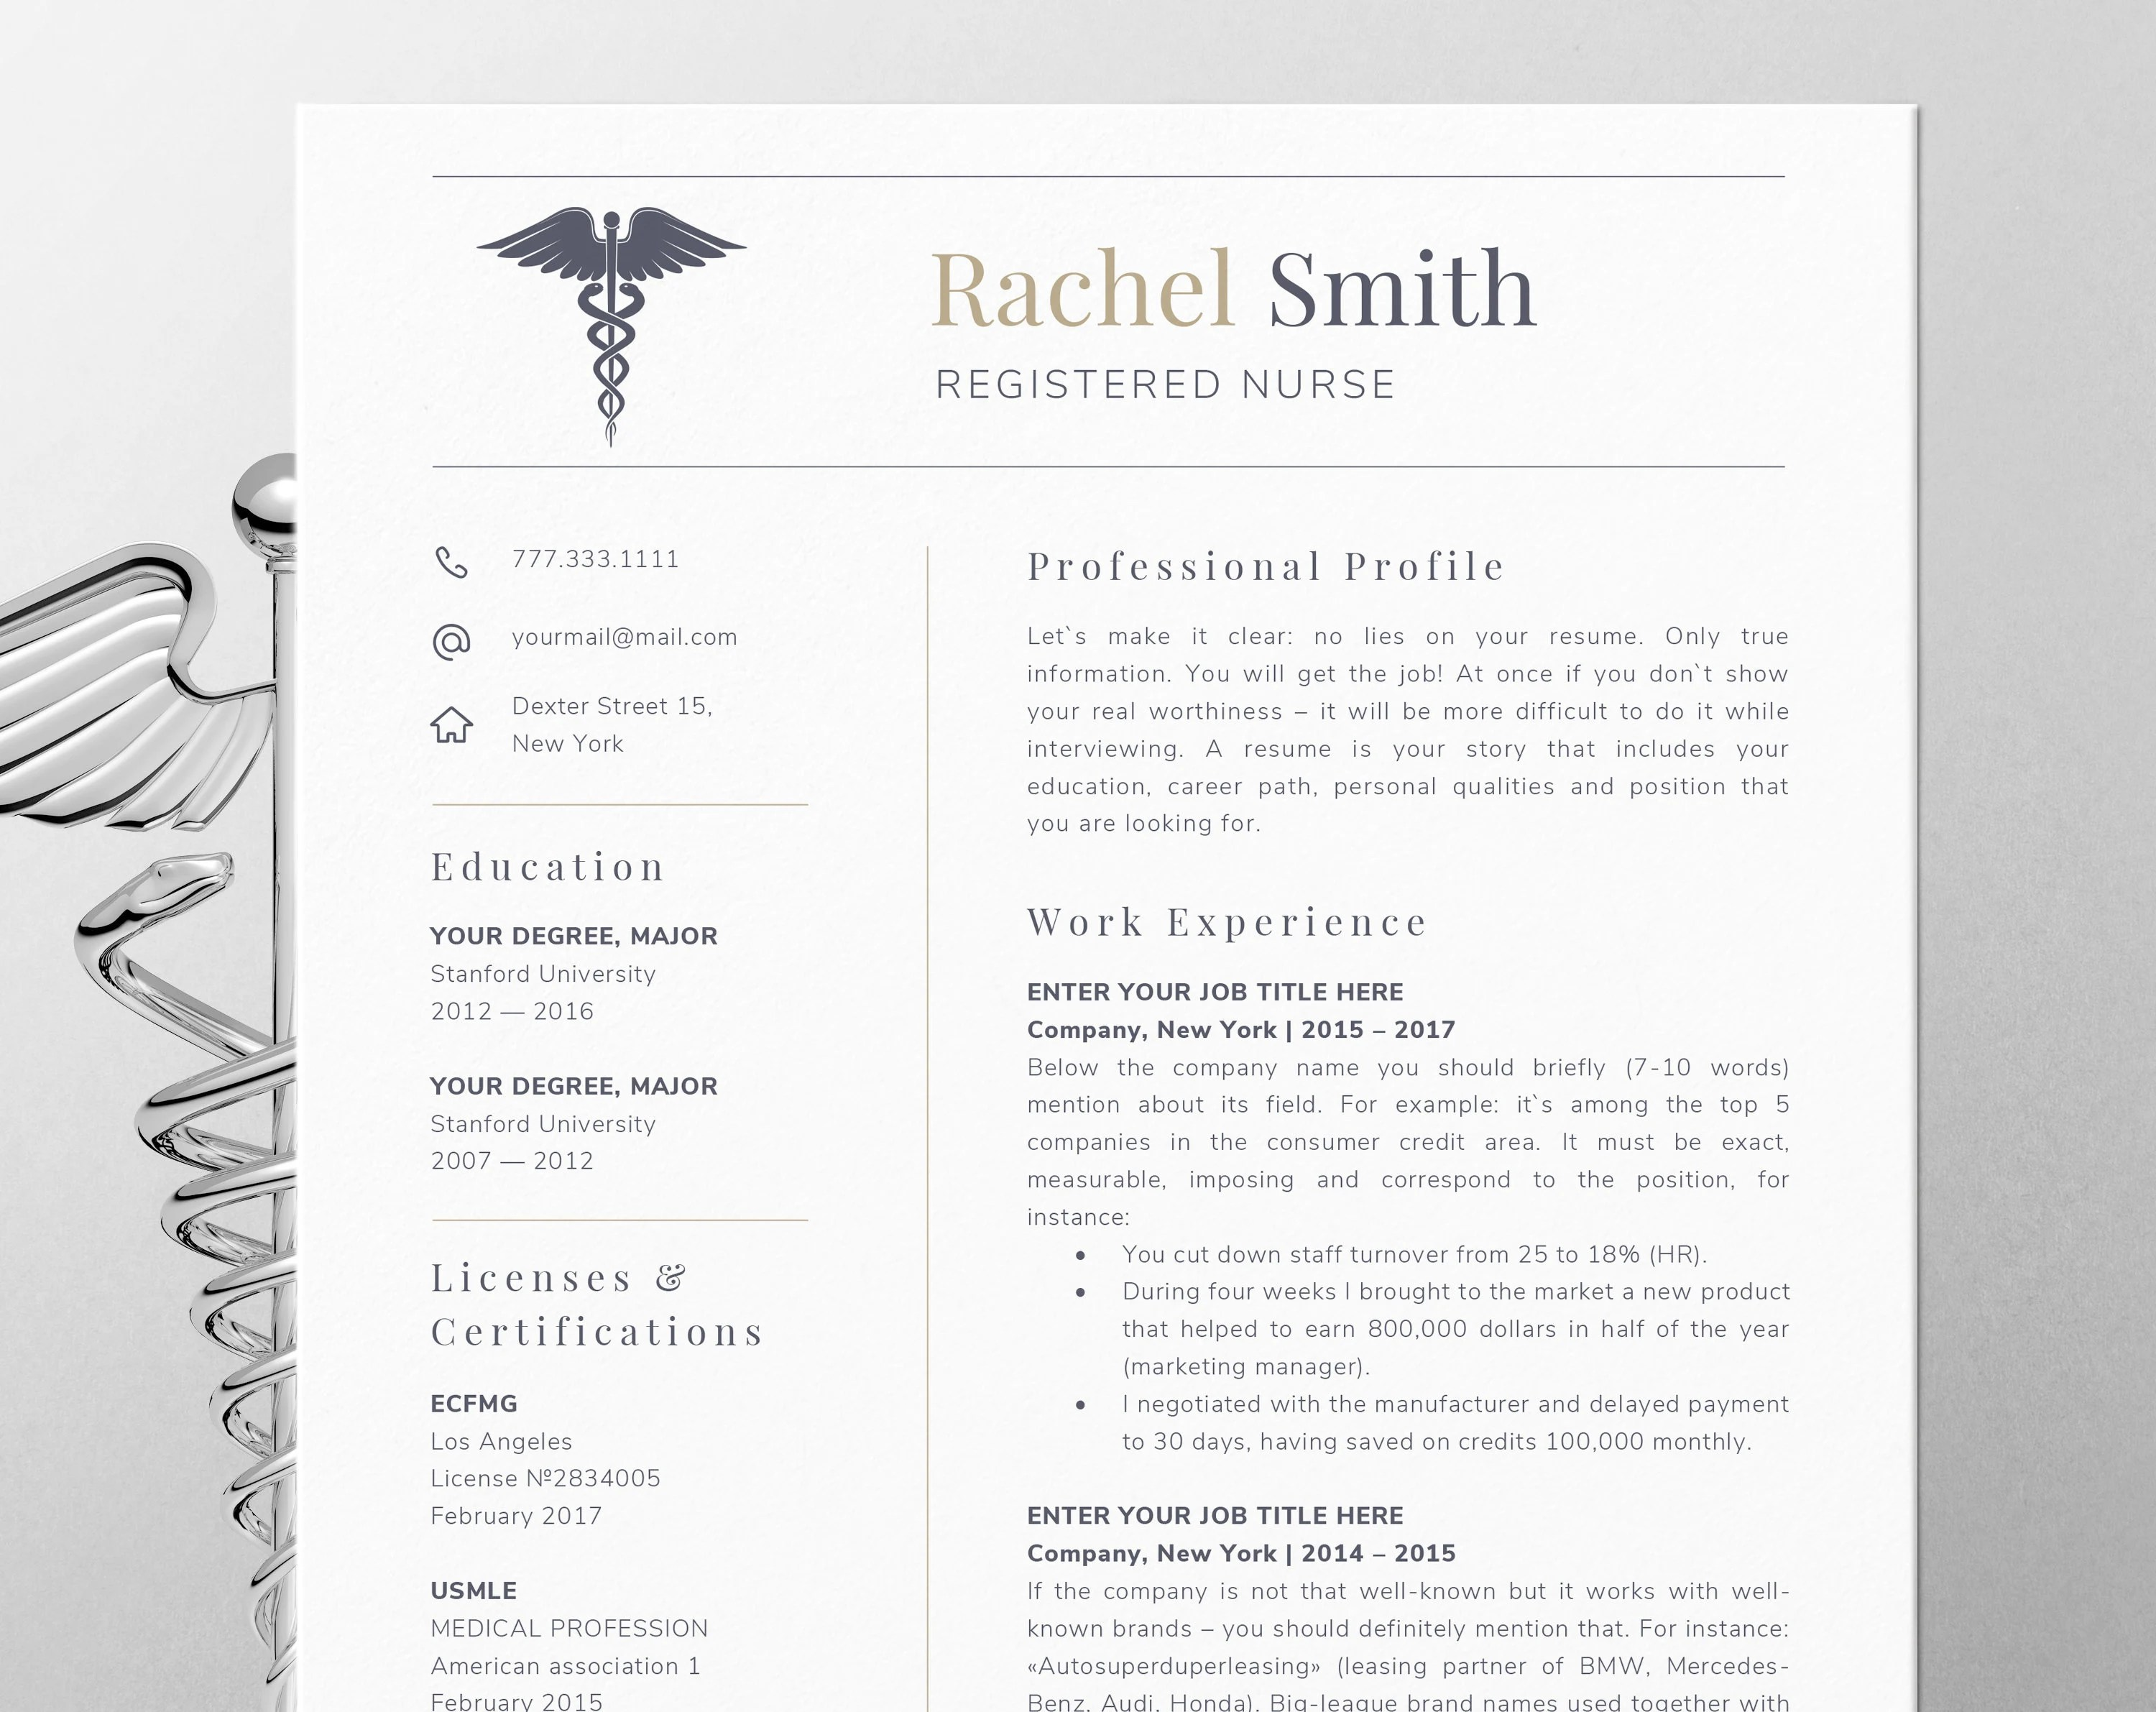 Nursing resume template for word Nurse cv template rn Etsy